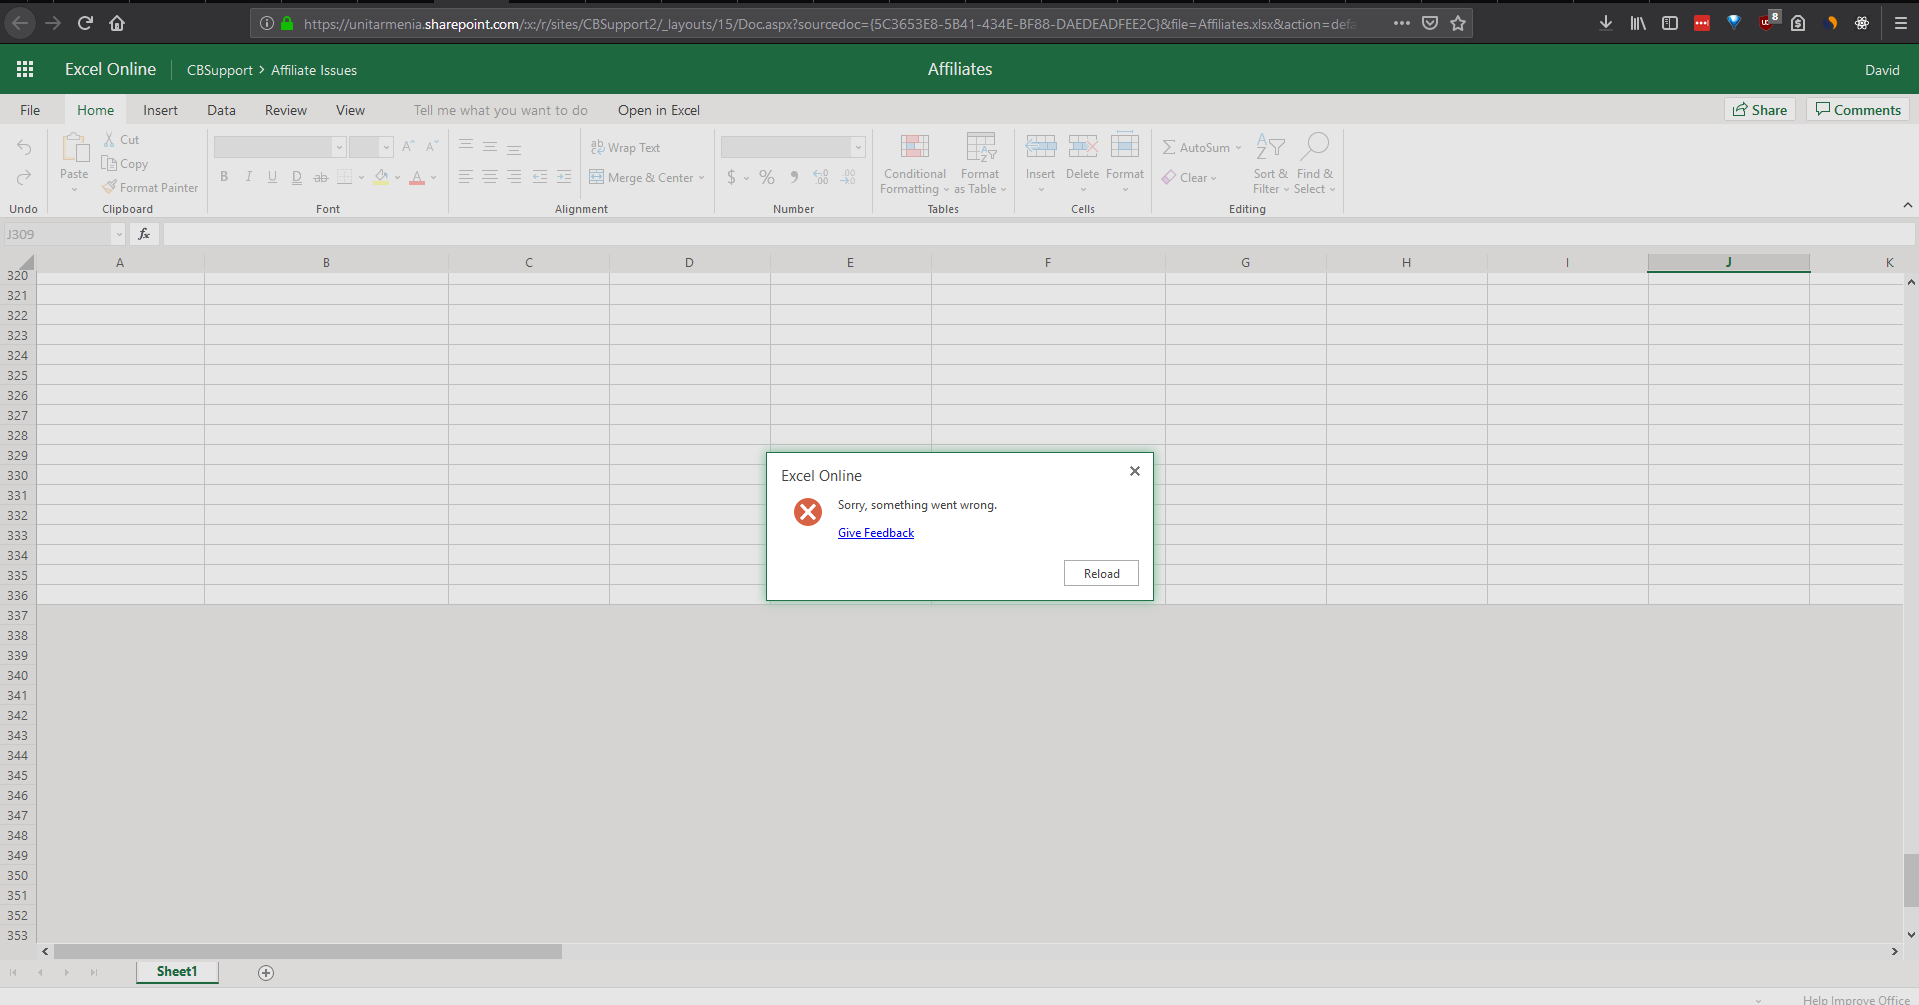 SharePoint Online not responding to modify any file or open.